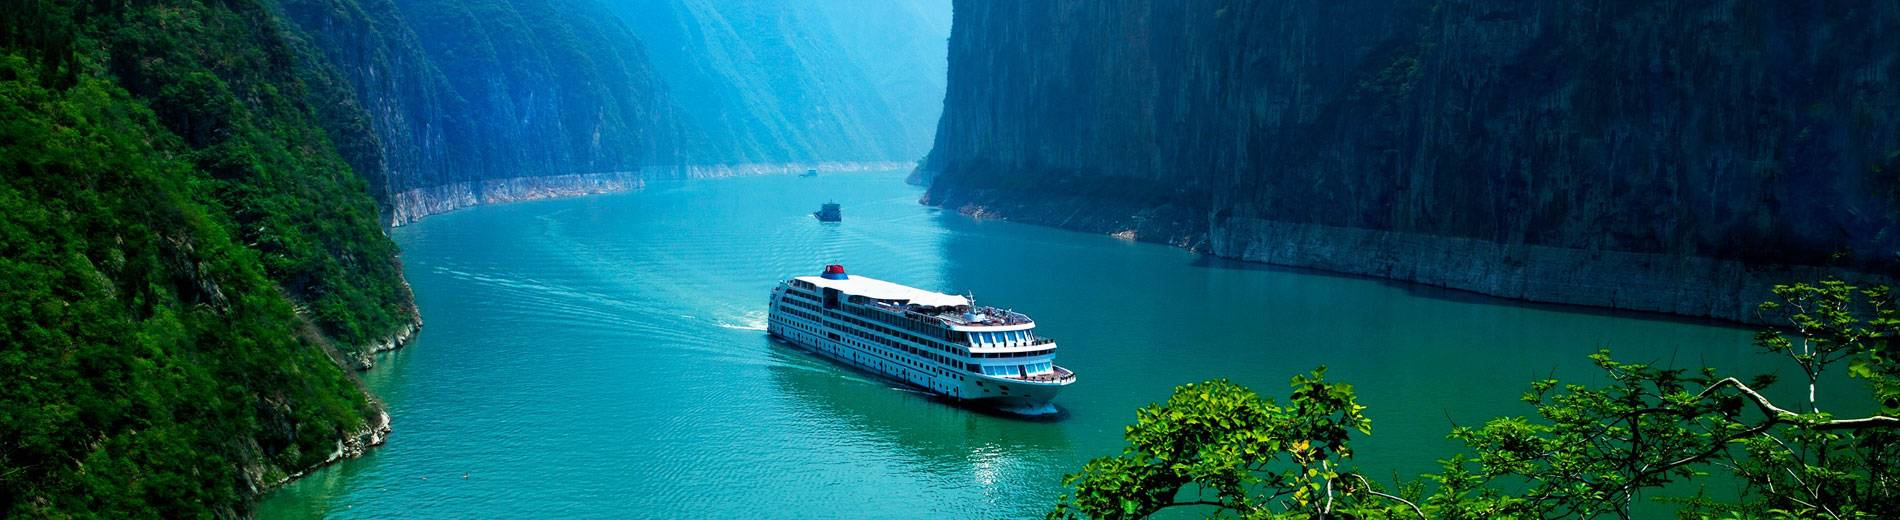 Victoria Cruise 5Star Victoria Cruises Line On The Yangtze River